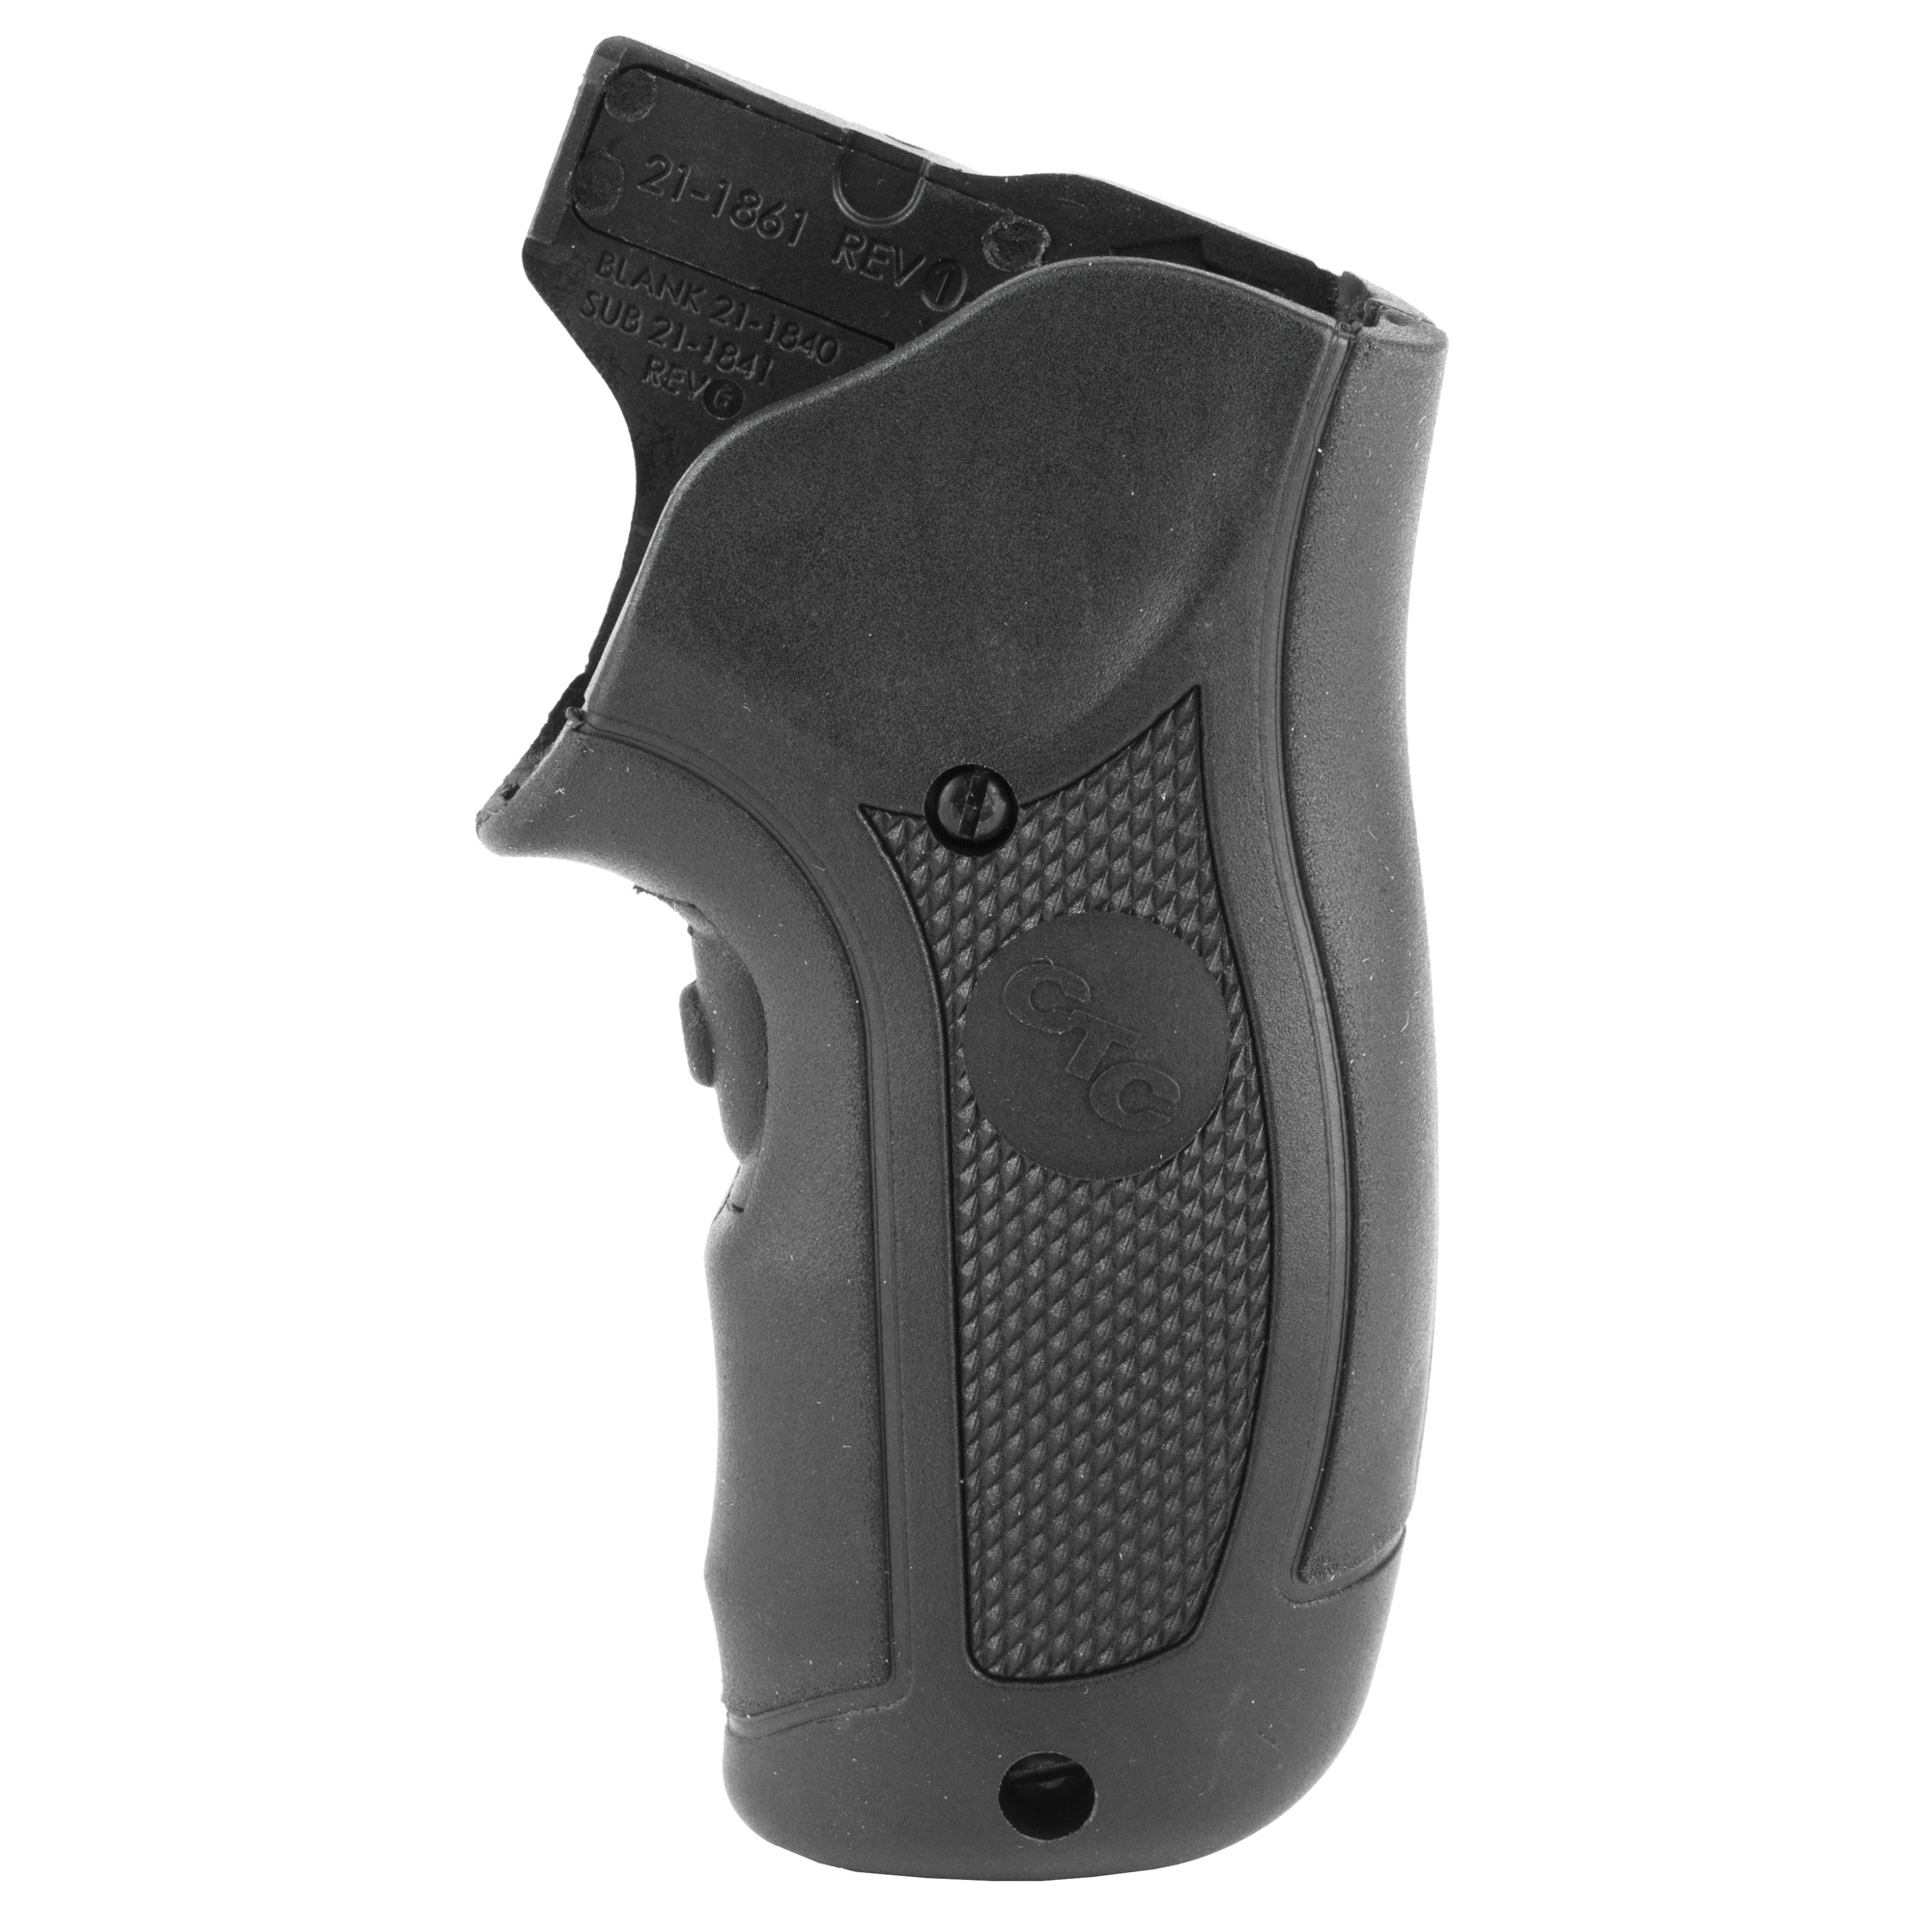 """LG-415G Green Lasergrips(R) are designed to fit Ruger LCR and LCRx revolvers by simply replacing the factory grips. This green laser sight features Crimson Trace's famed Instinctive Activation(TM)"""" which activates the laser when the firearm is held in a natural firing grip. Laser activation button is located in the front"""" and the unit includes a Master On/Off Switch for completely powering down the unit. With battery life of over two hours and fully adjustable for windage and elevation"""" the LG-415G is quickly user-installed in moments with zero alterations to the firearm."""